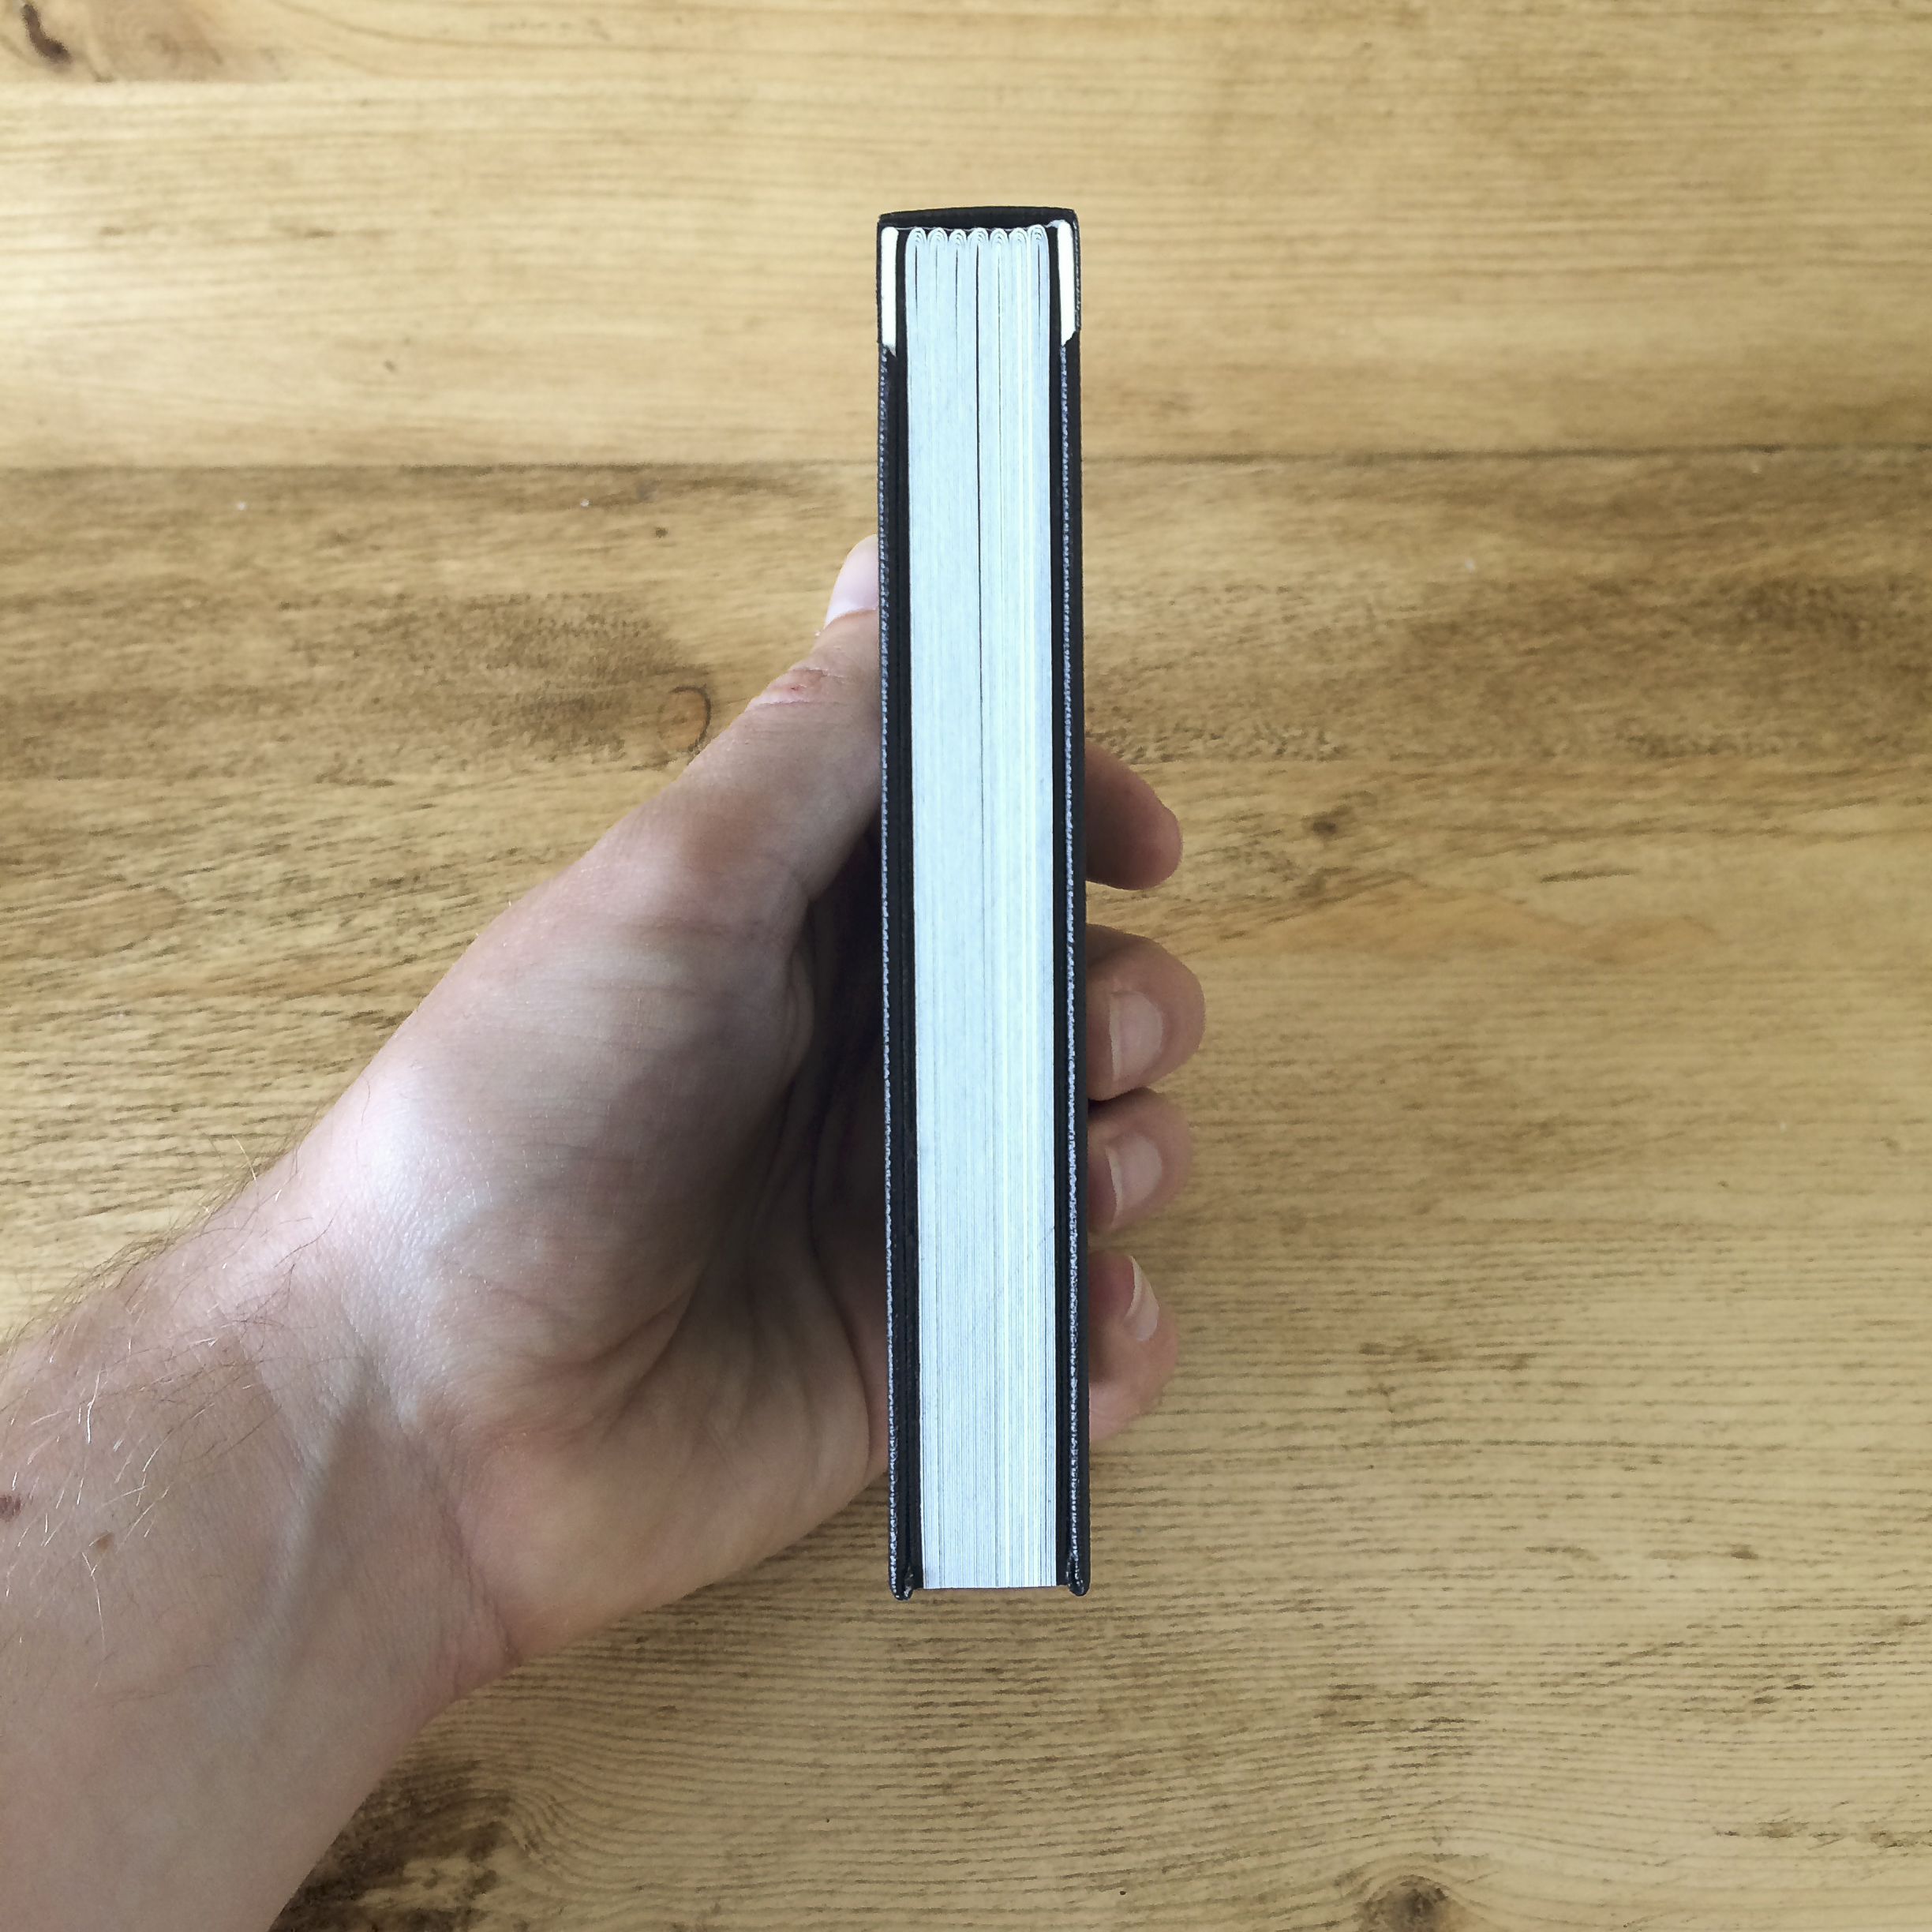 sewn boards binding photobook